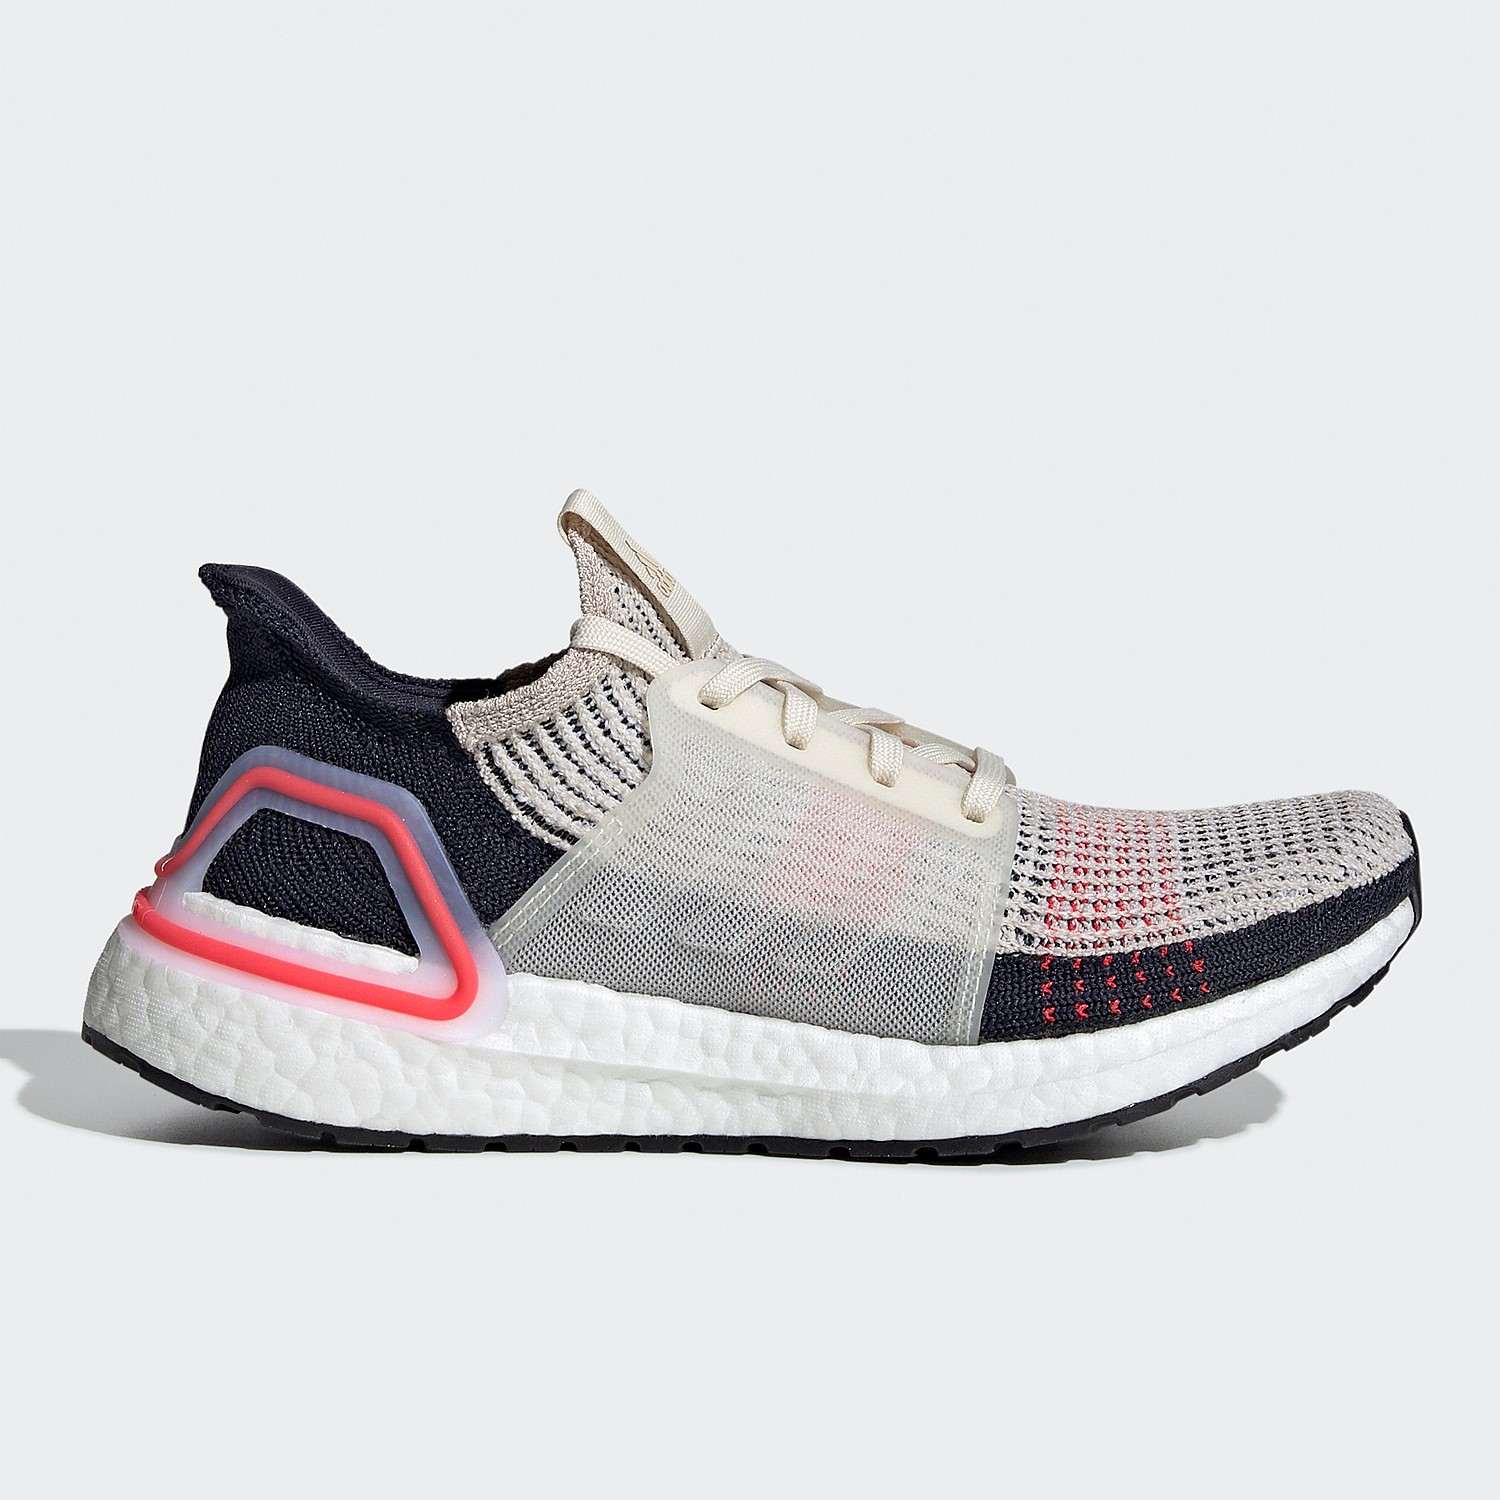 super popular 63902 dbc3d Women s New Arrivals   Women s New Arrivals Clothing and Footwear Online    Stirling Sports - Ultraboost 19 Womens